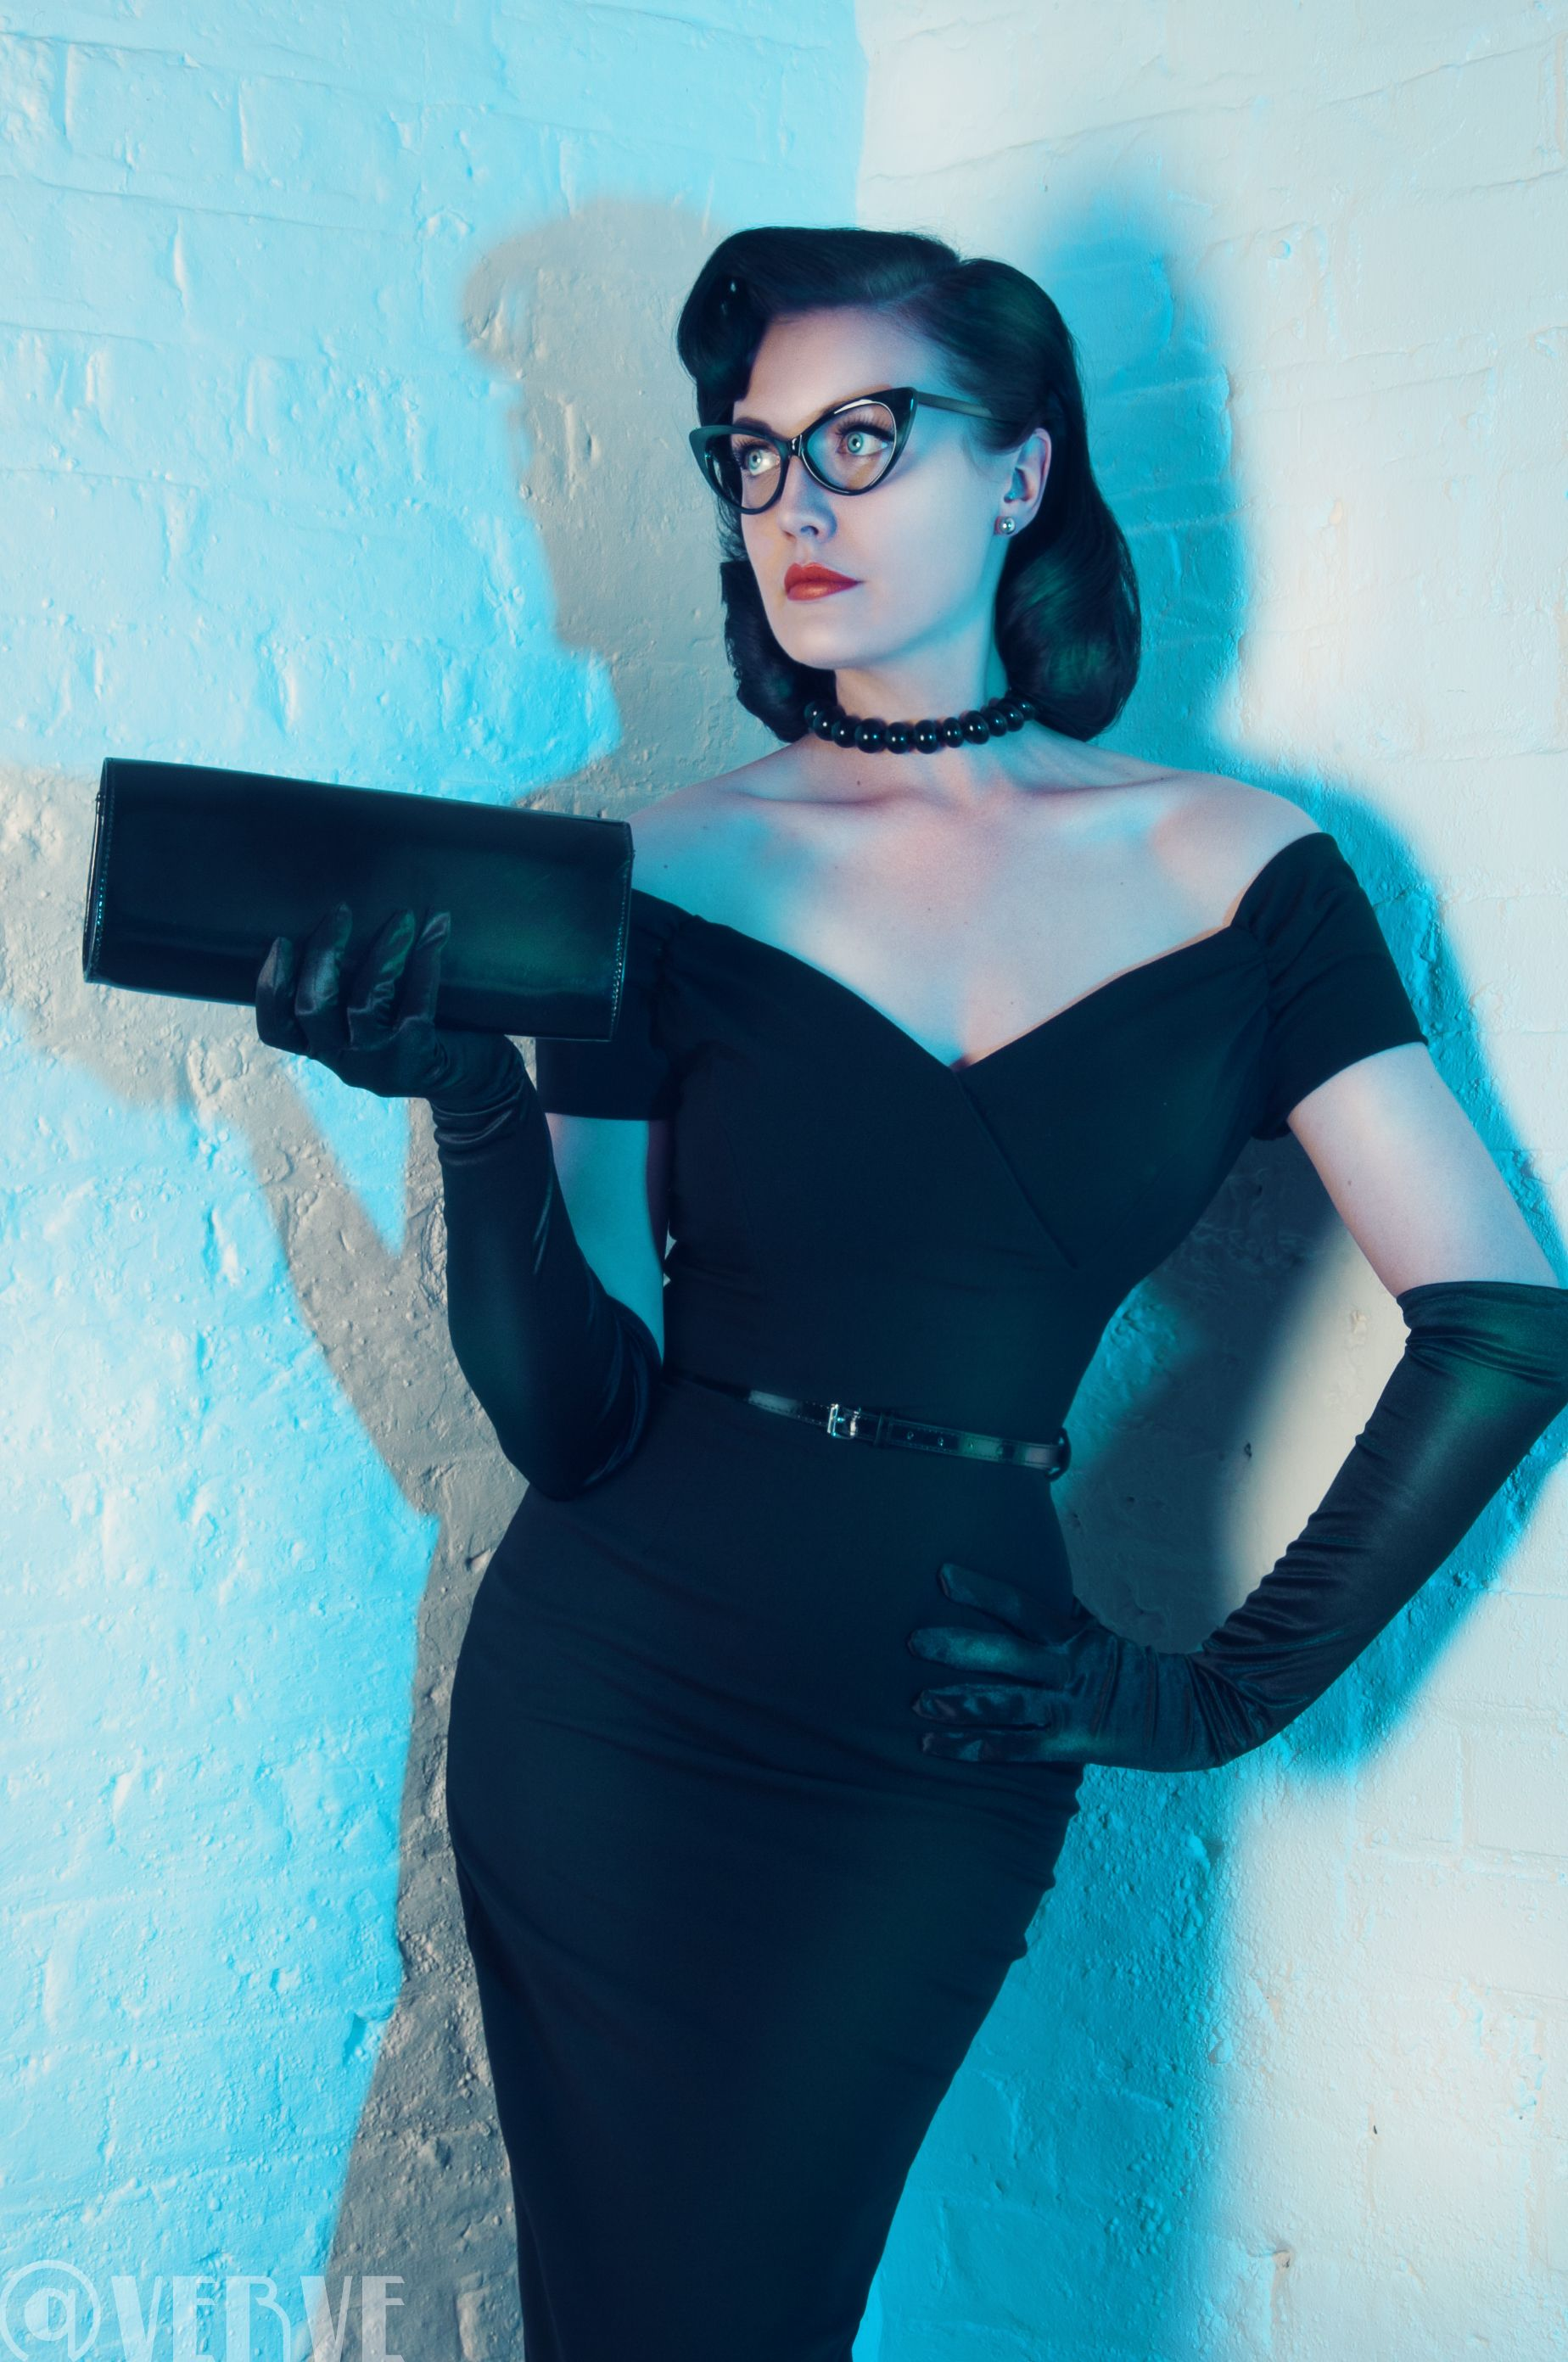 ALL OF THIS!  Be the ultimate femme fatale in our Fatale Black Pencil Dress #fashion #style #elegant #chic #classic #sophisticated #retro #vintage #pinup #LBD #littleblackdress #theprettydress #theprettydresscompany